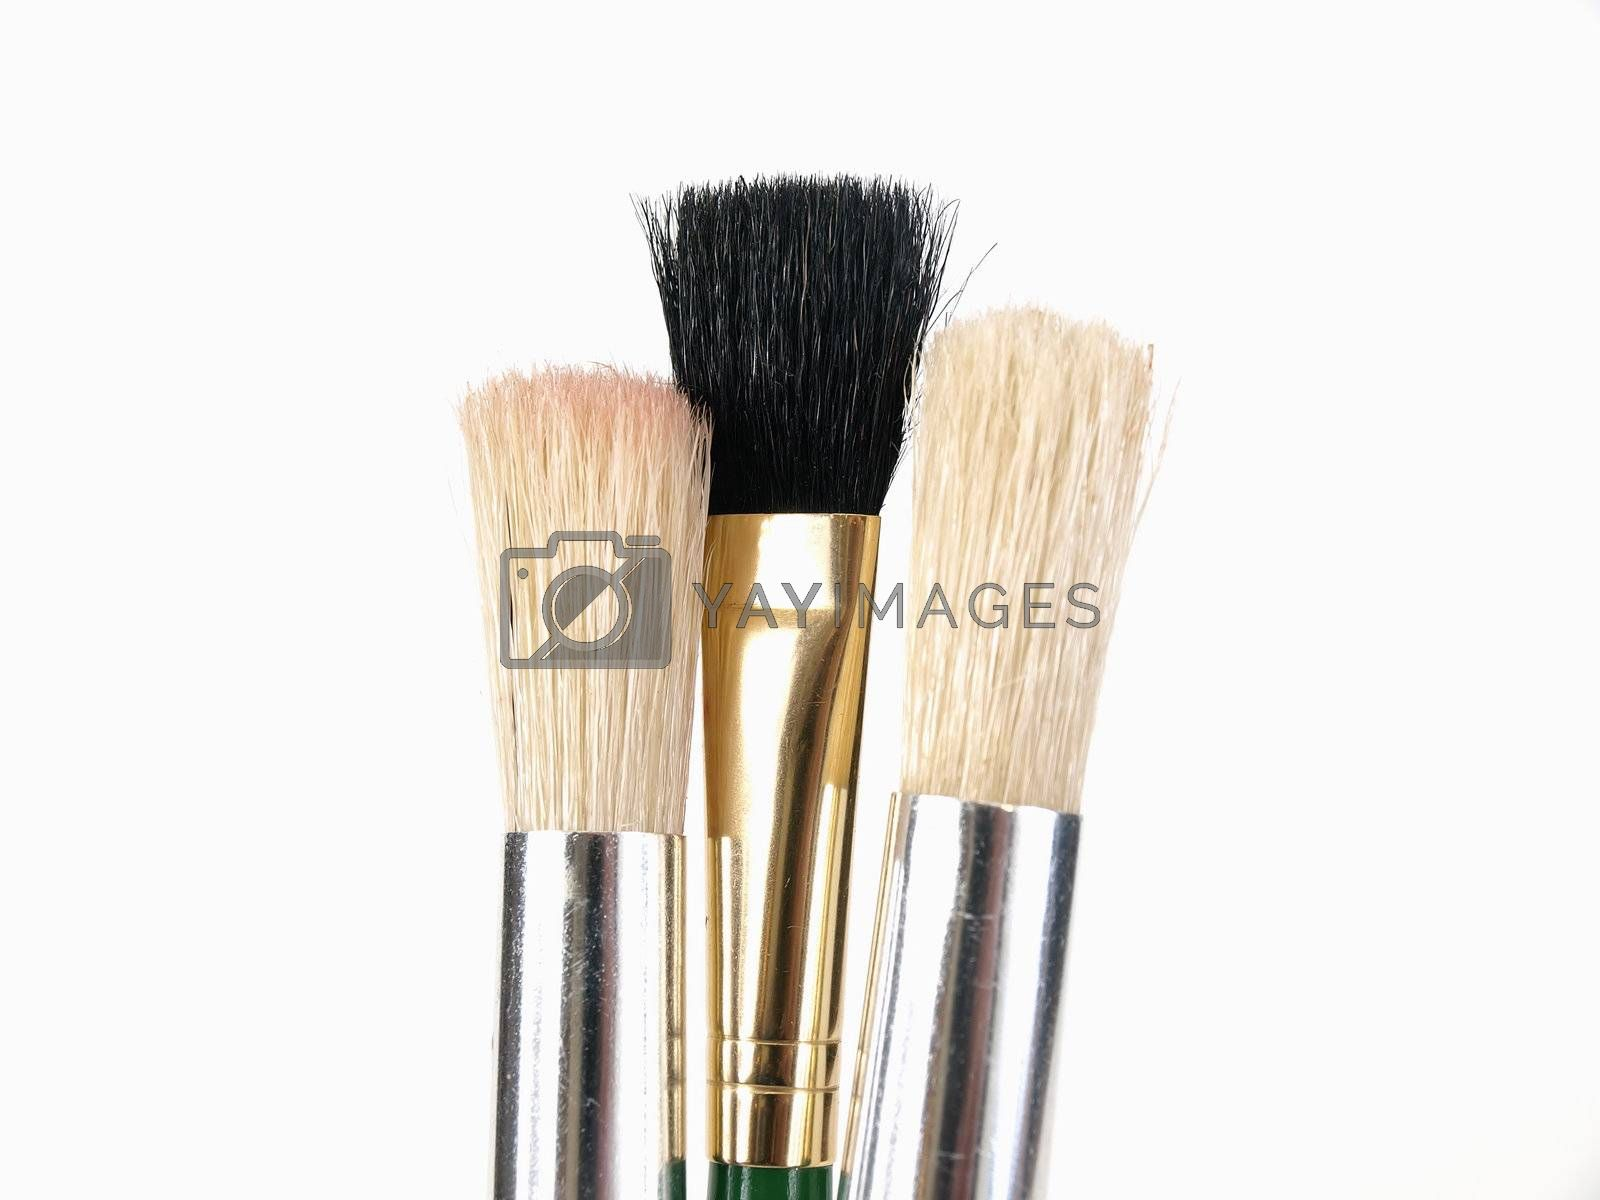 A trio of Brush Tips, two white, one black, over a white background.